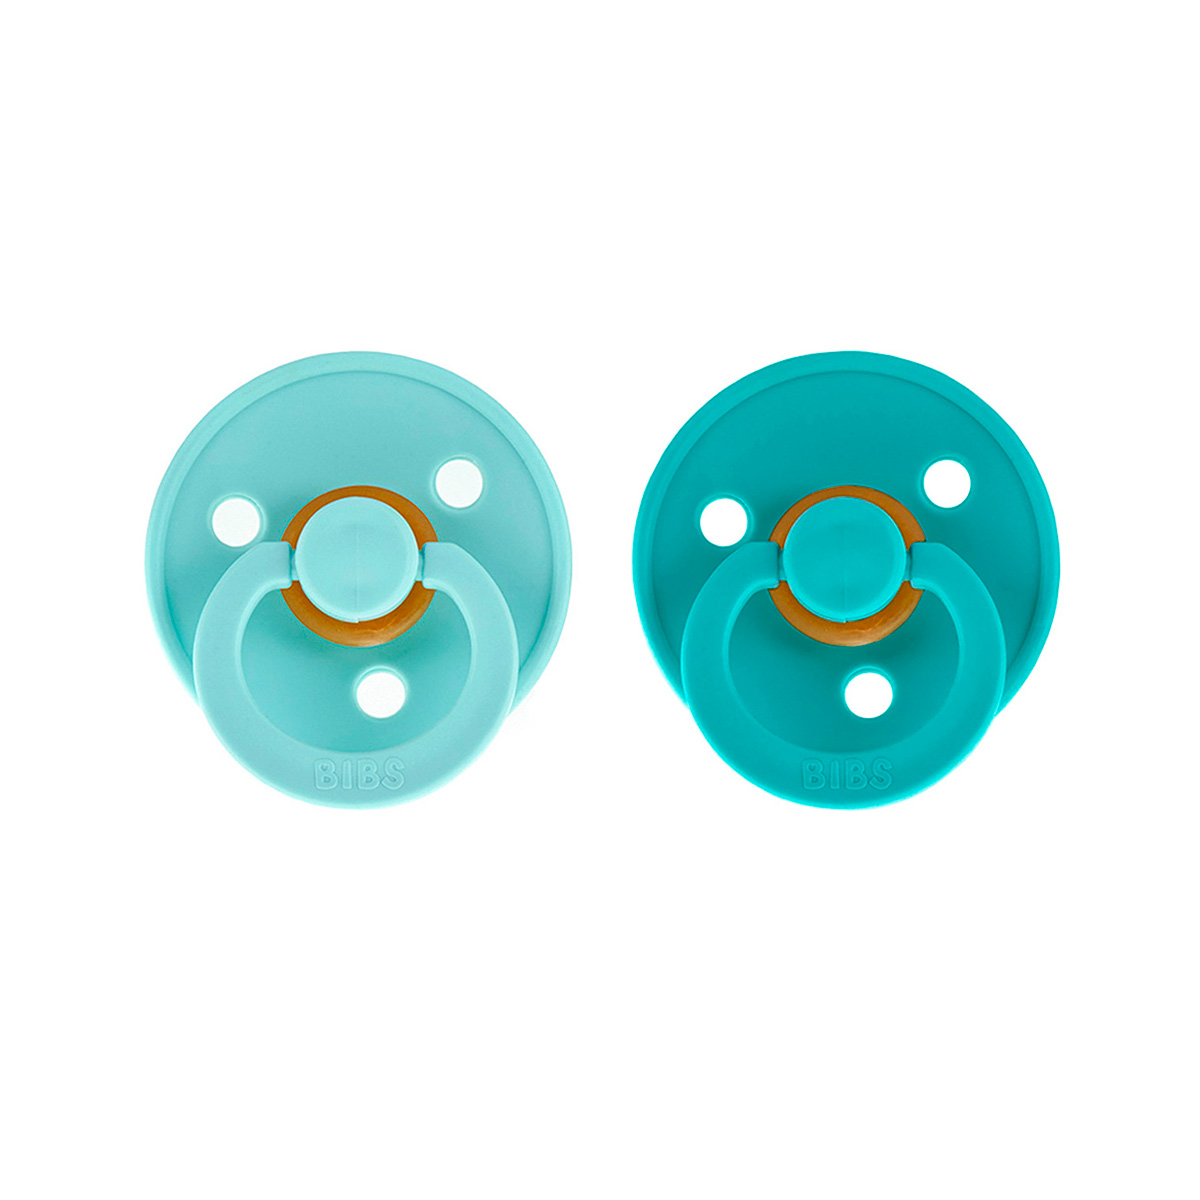 Pack 2 Chupetes Bibs Mint/Turquoise